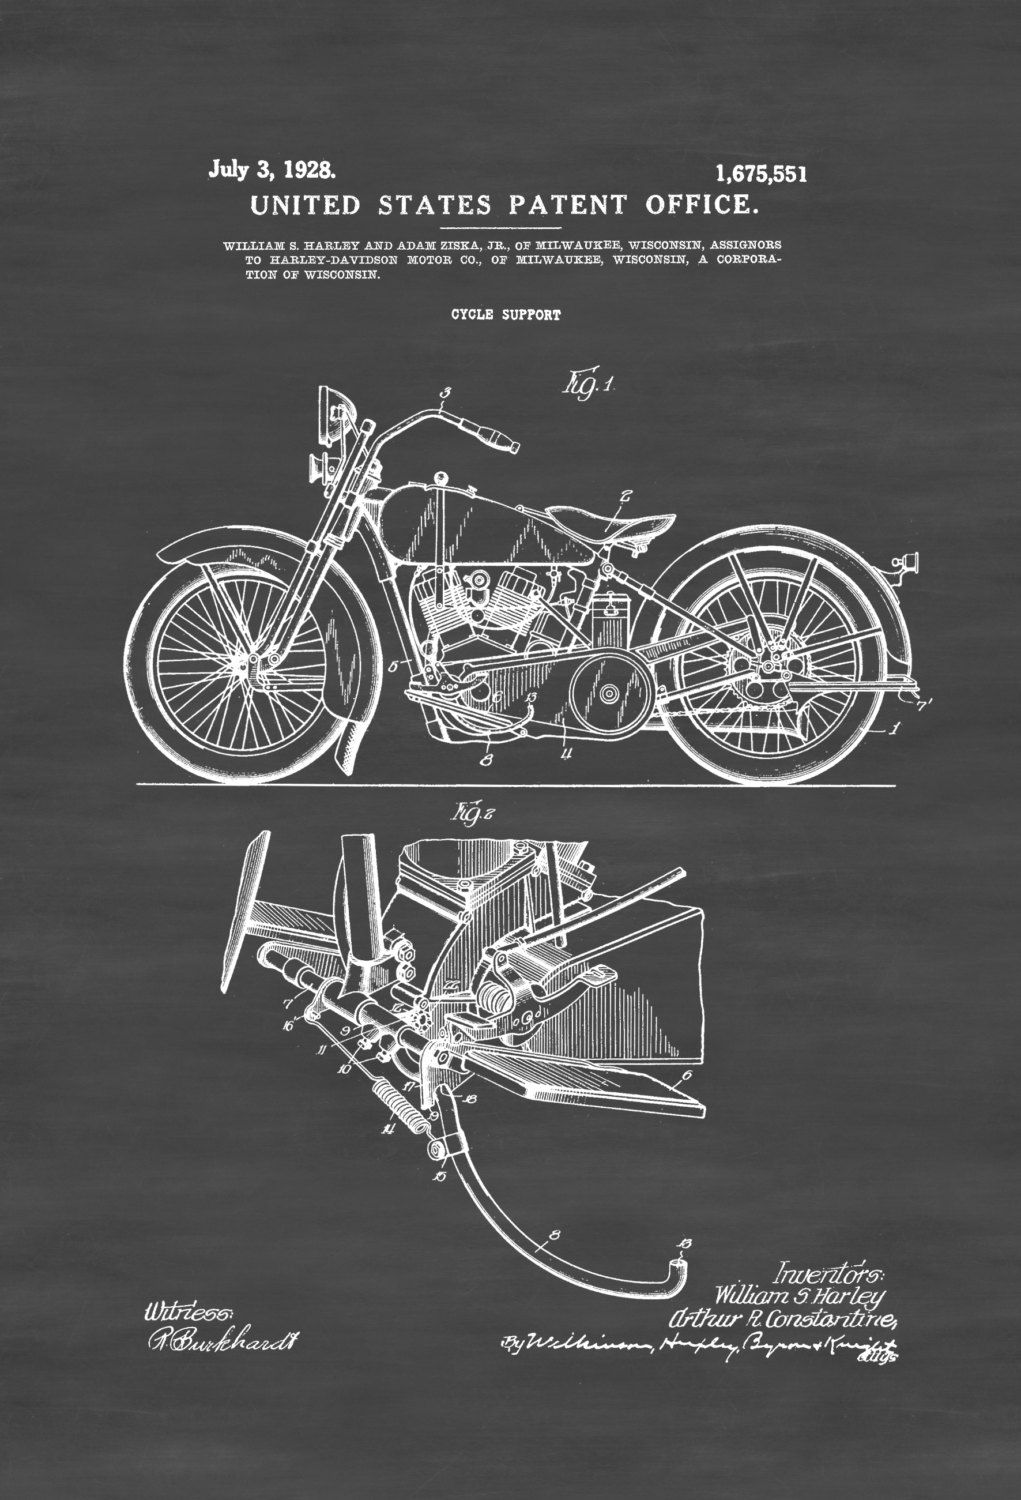 9c0a3f86 New to PatentsAsPrints on Etsy: Harley Davidson Patent - Patent Print Wall  Decor Motorcycle Decor Harley Davidson Art Harley Patent Harley Bike (4.99  USD)